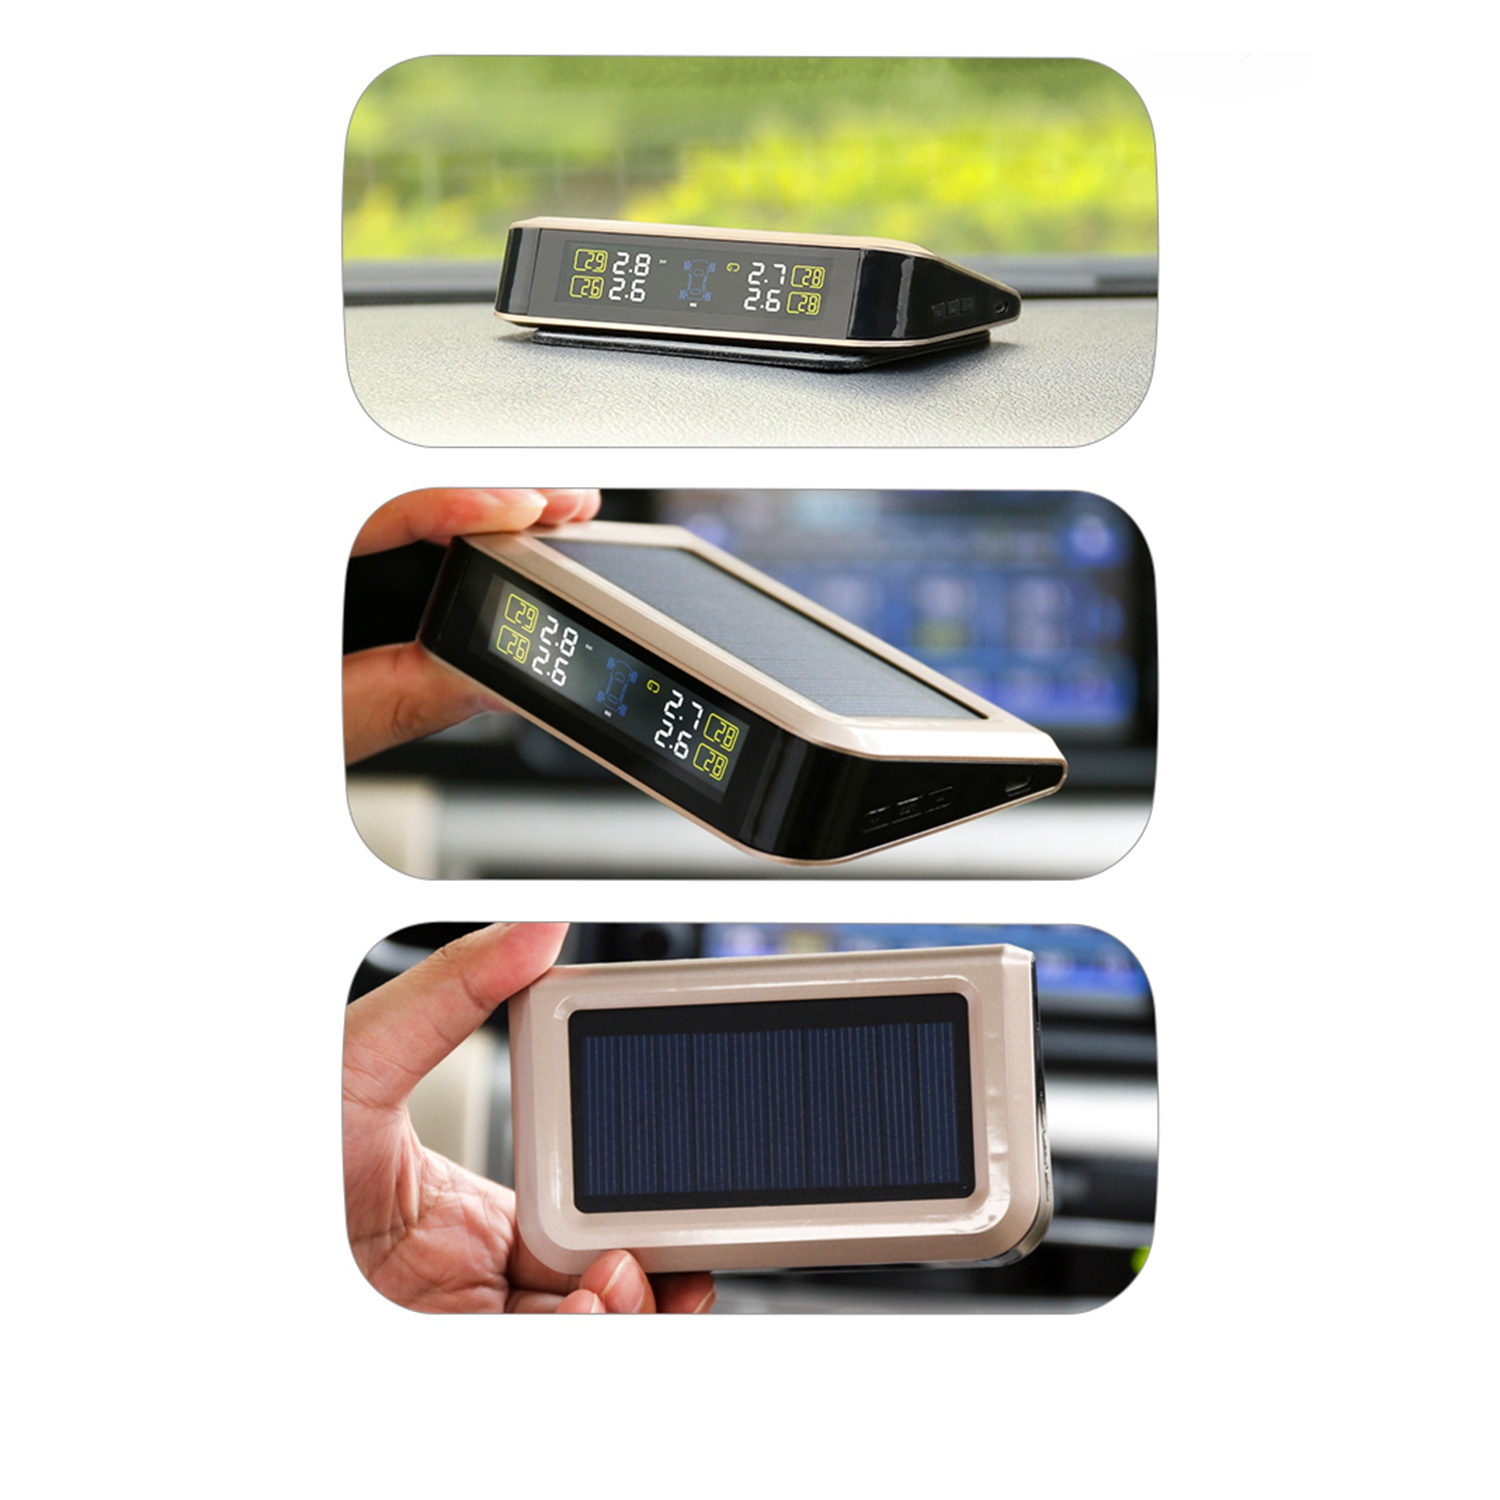 Careud Solar Power Supply Tpms Car Tire Pressure Monitoring System With 4 Sensors Psi/Bar Measurement